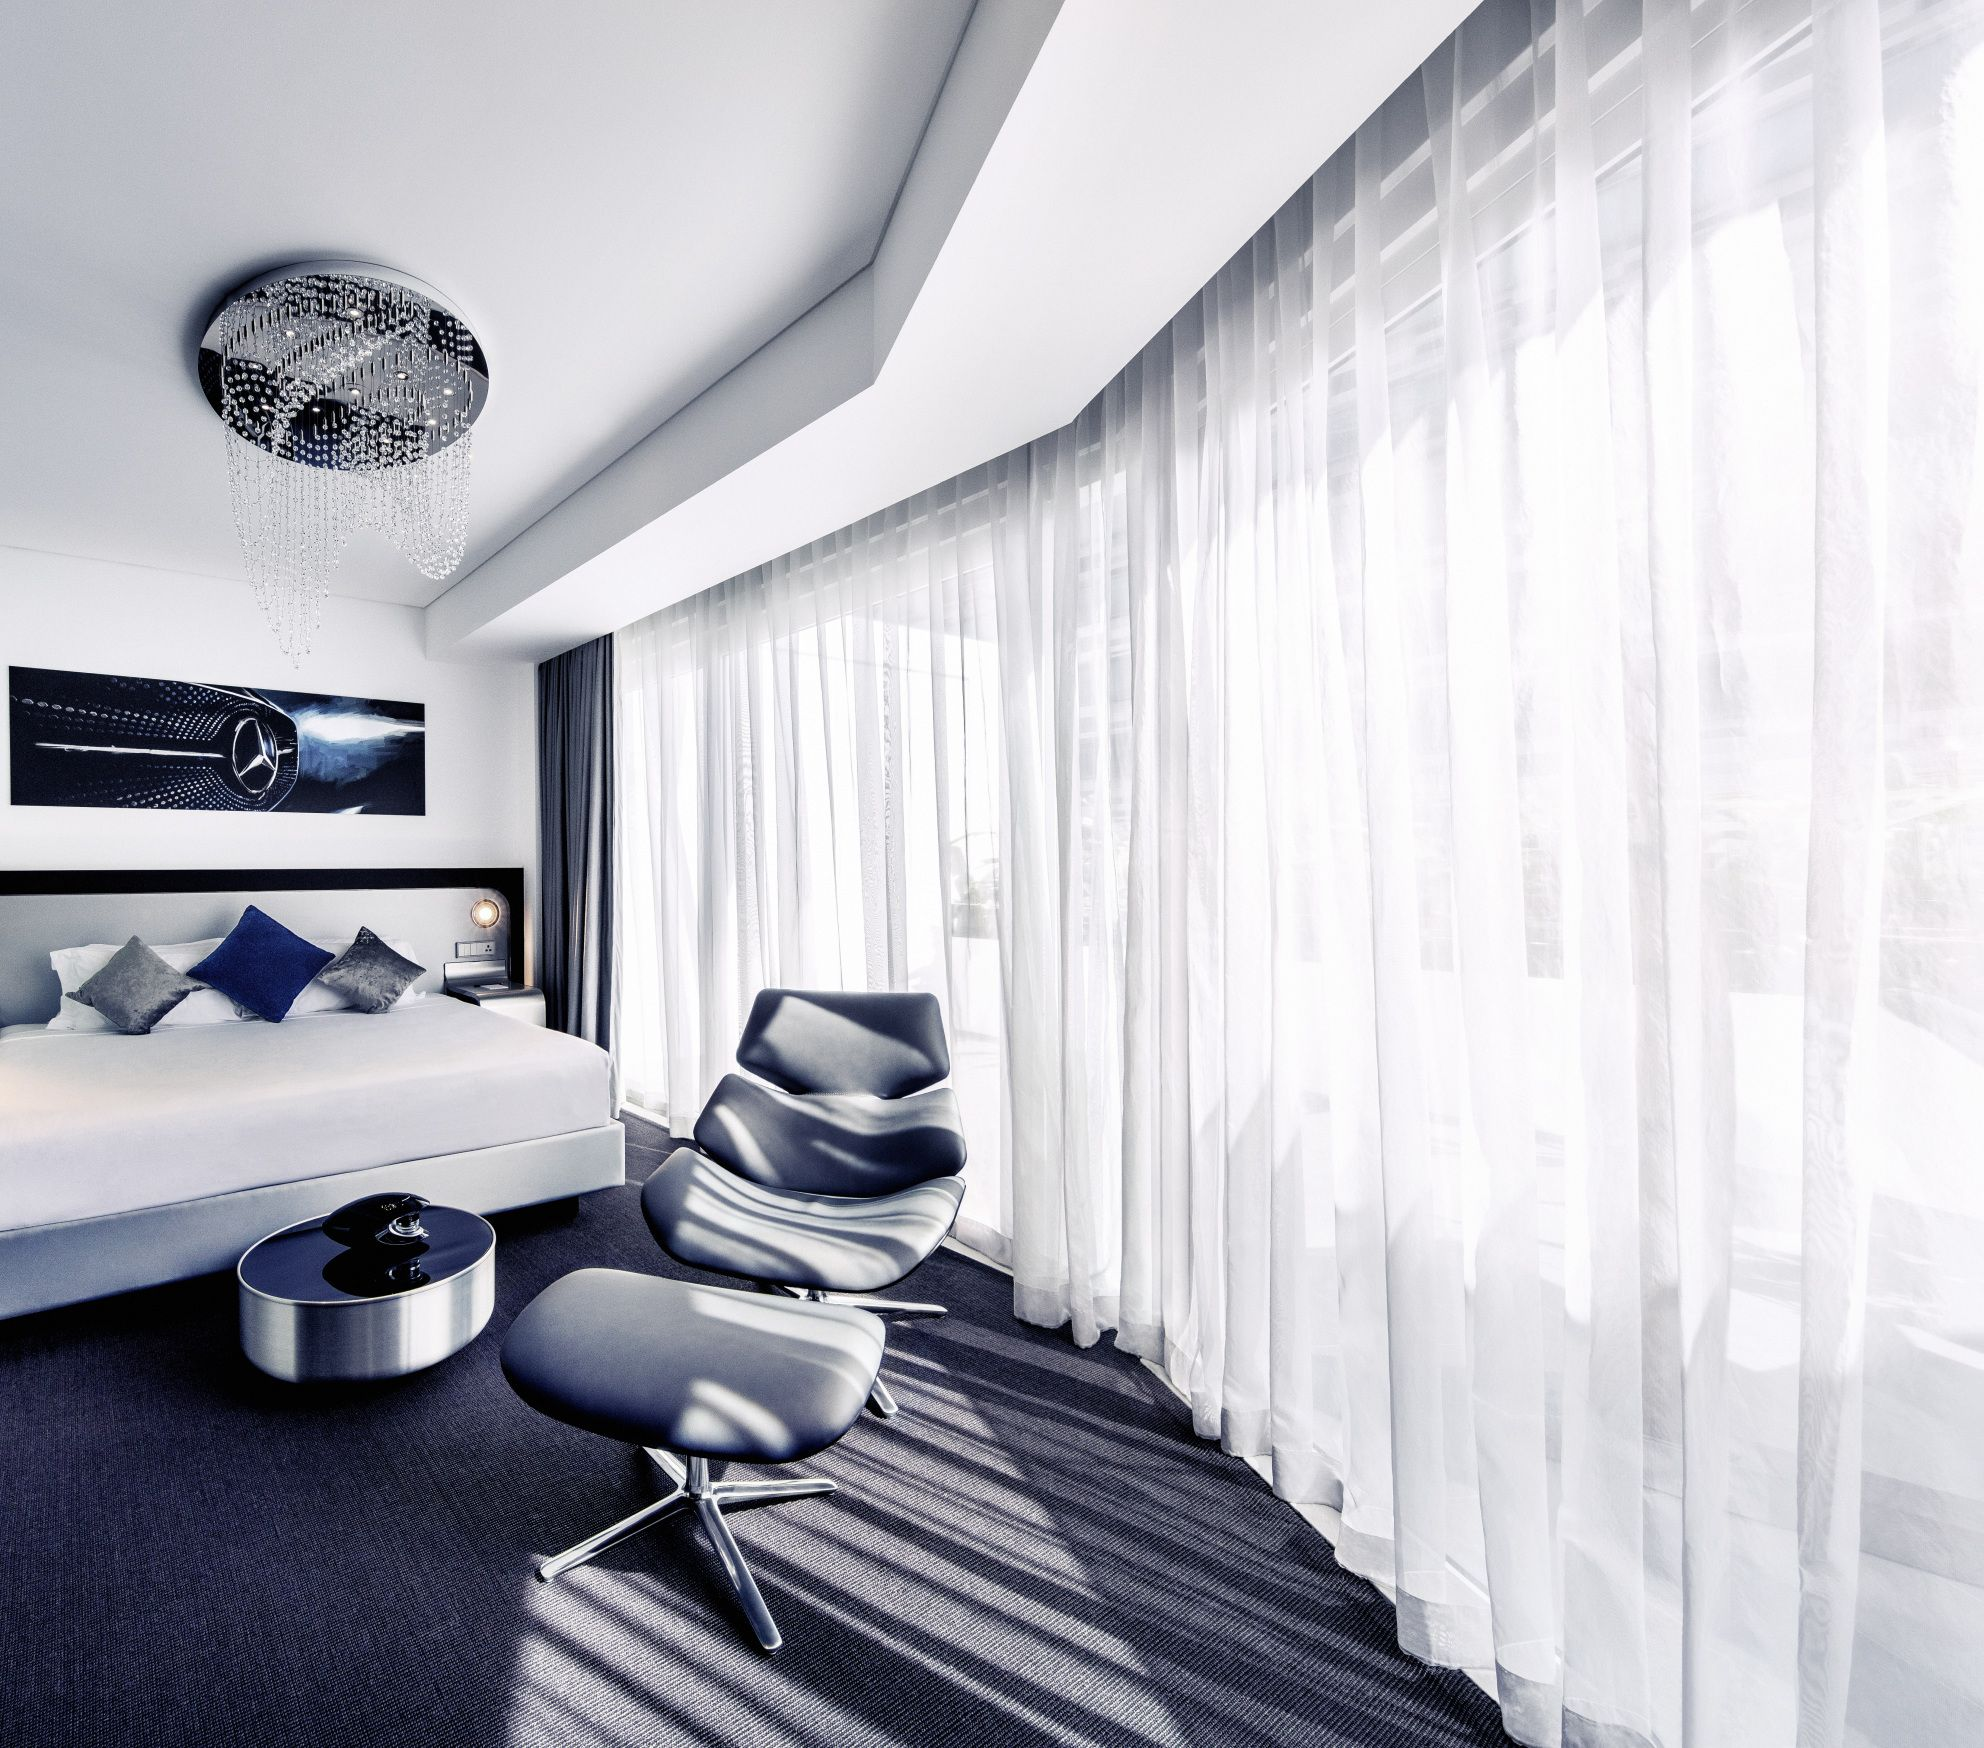 The Mercedes-Benz Living @ Fraser apartments, which already exist in London and are now being introduced in Singapore.